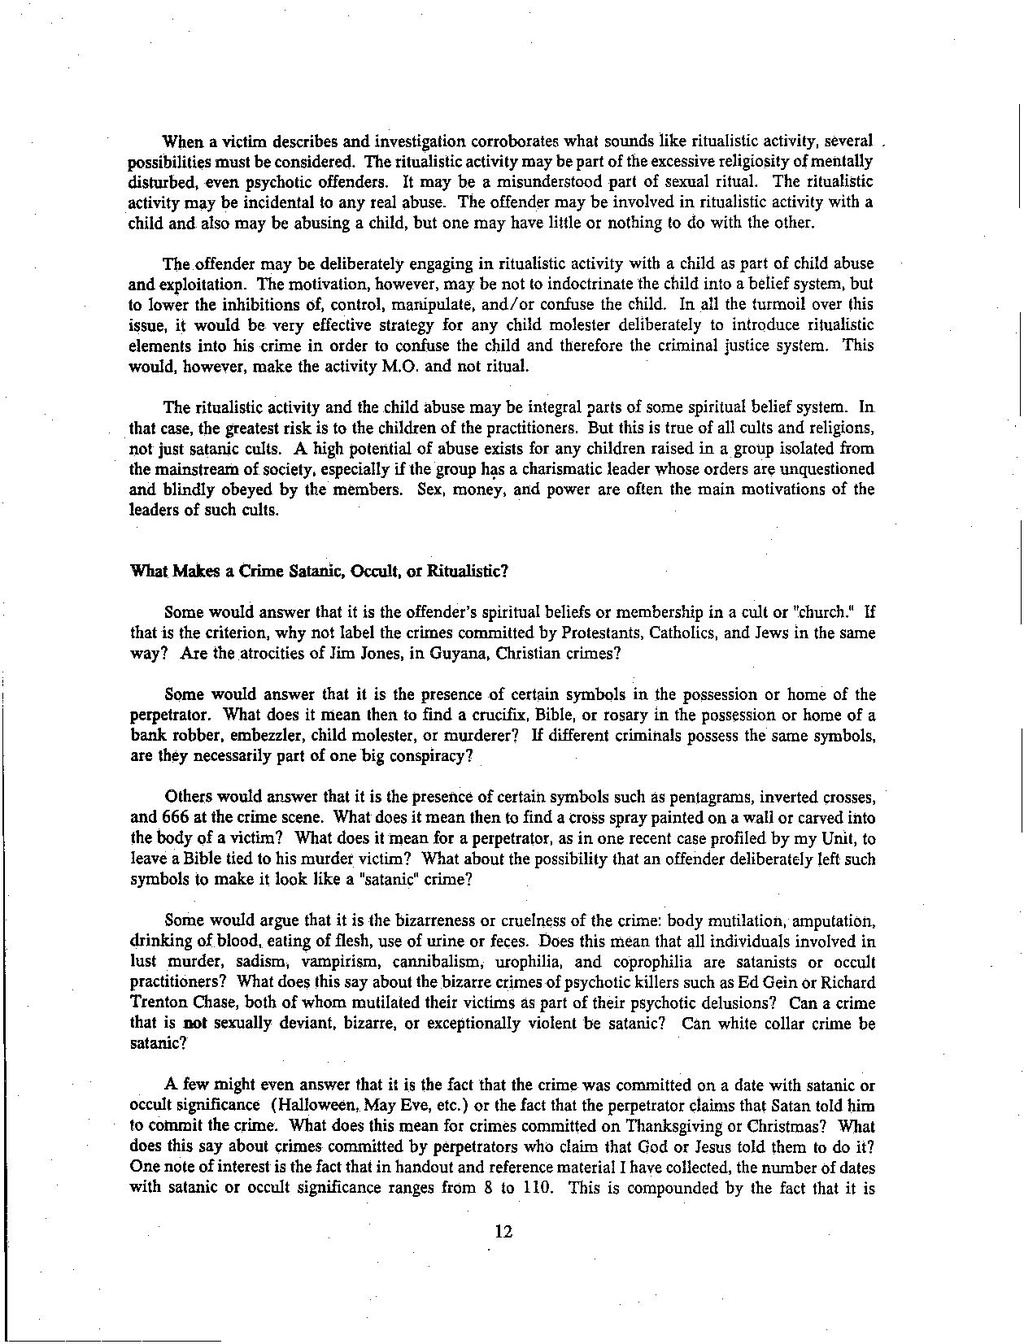 Pagelanning Report 1992 Investigators Guide To Allegations Of